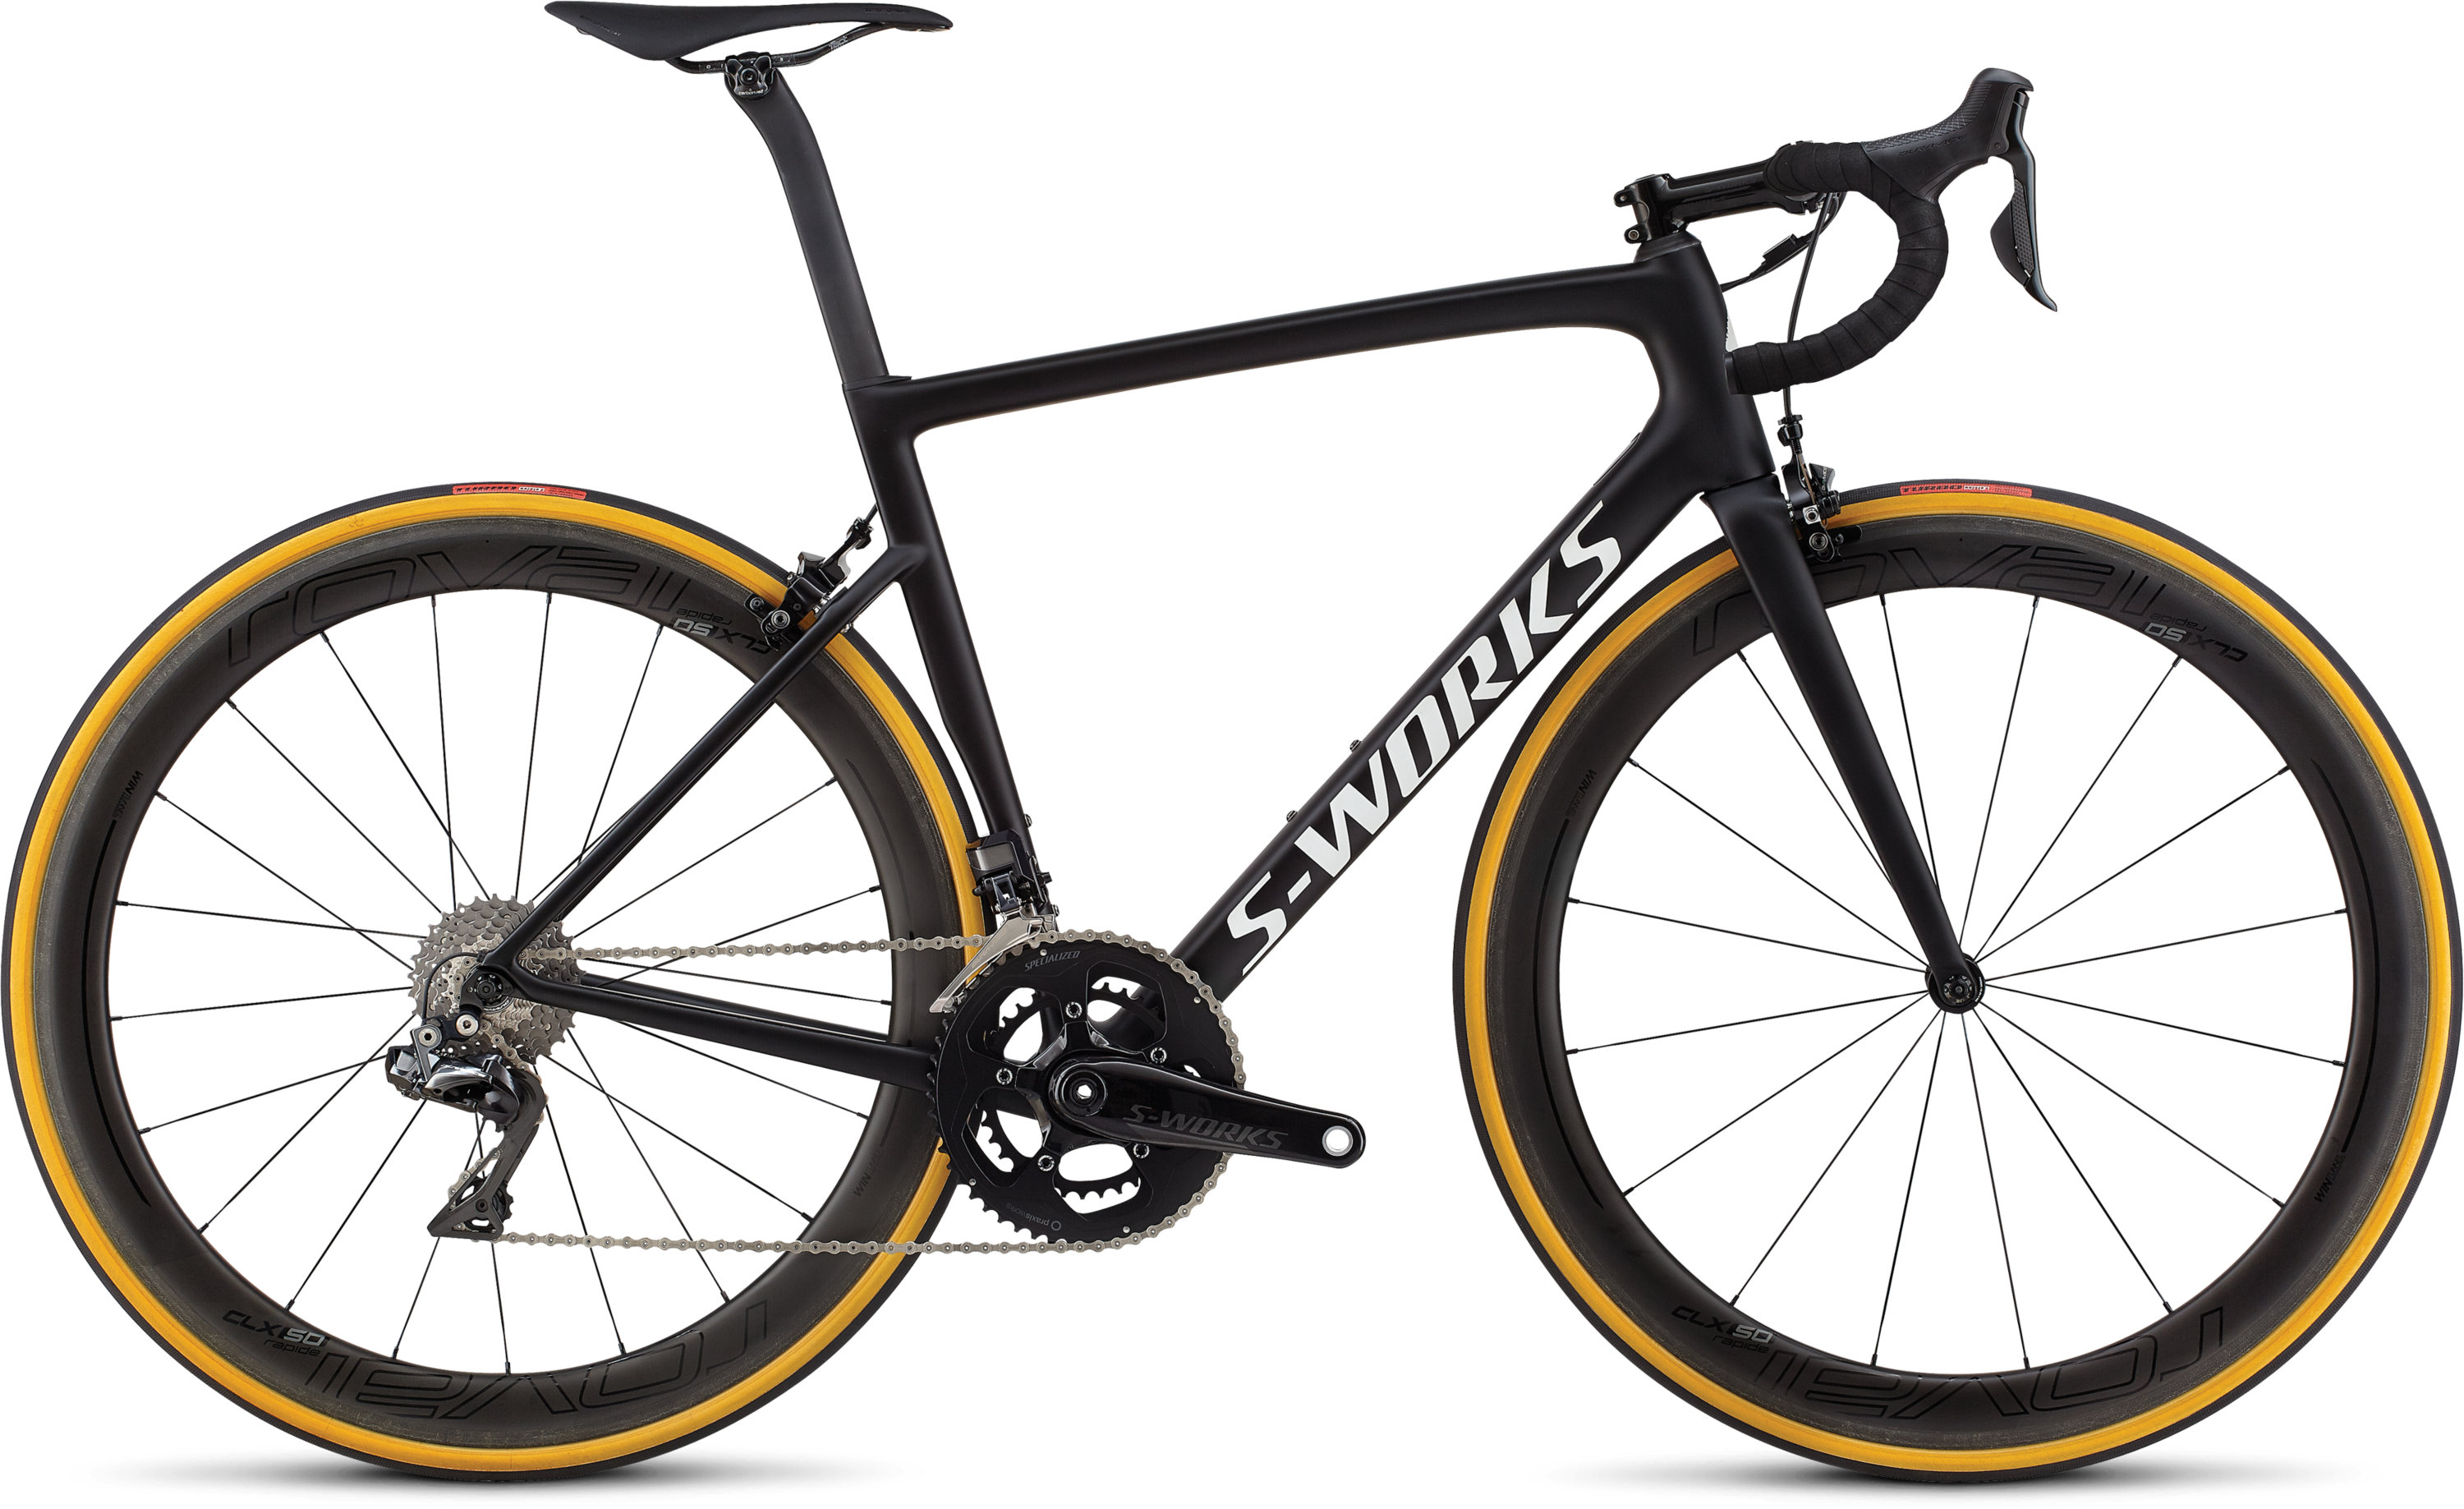 b24d7085e22 2018 Specialized MEN'S S-WORKS TARMAC - Specialized Concept Store